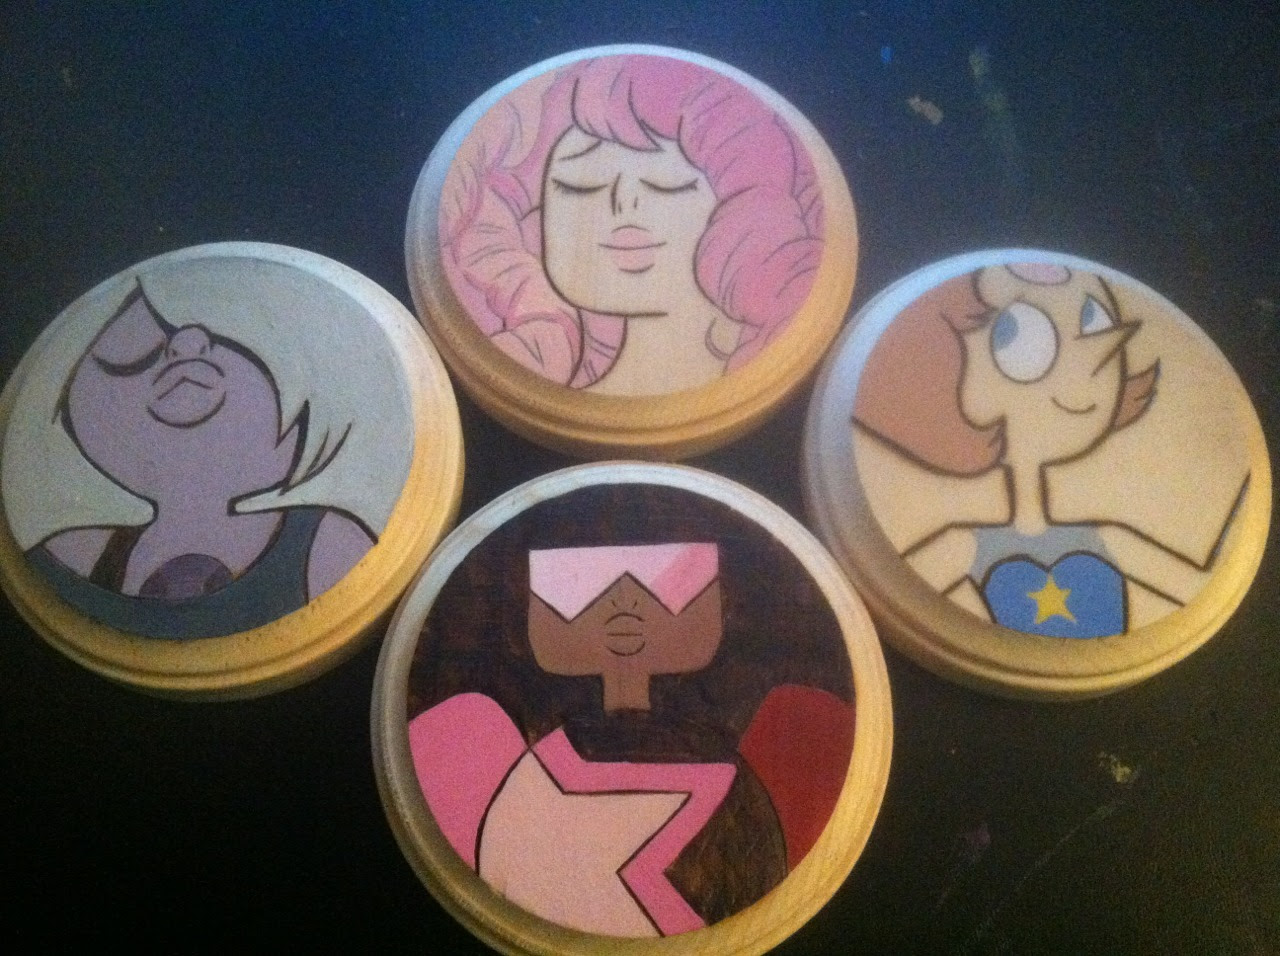 Women of Steven Universe woodburned coasters for Anime Milwaukee 2015!